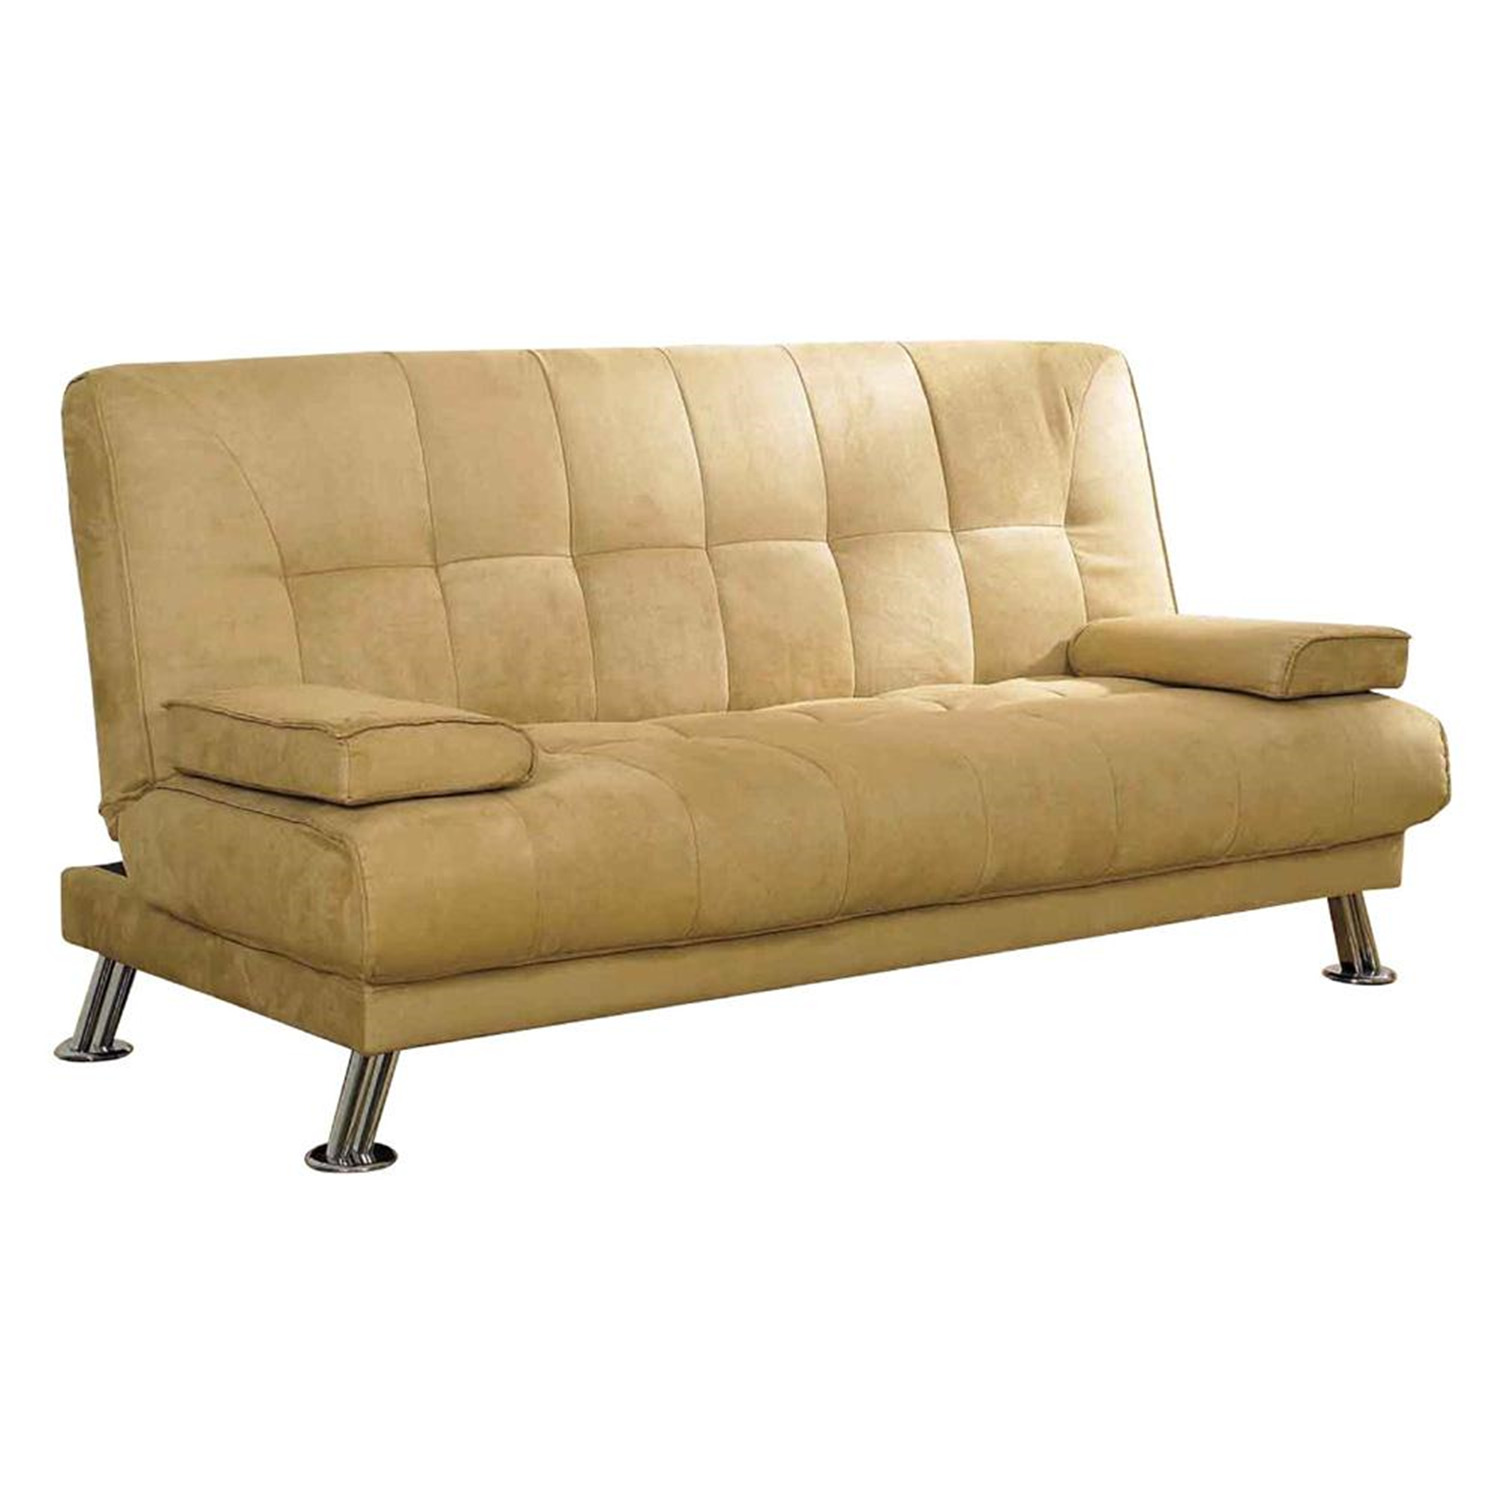 Futon Sofa Bed Target 187 Home Design 2017 : r8112camfutonsofabedwith2pillows from moderndress.org size 1000 x 1000 jpeg 50kB